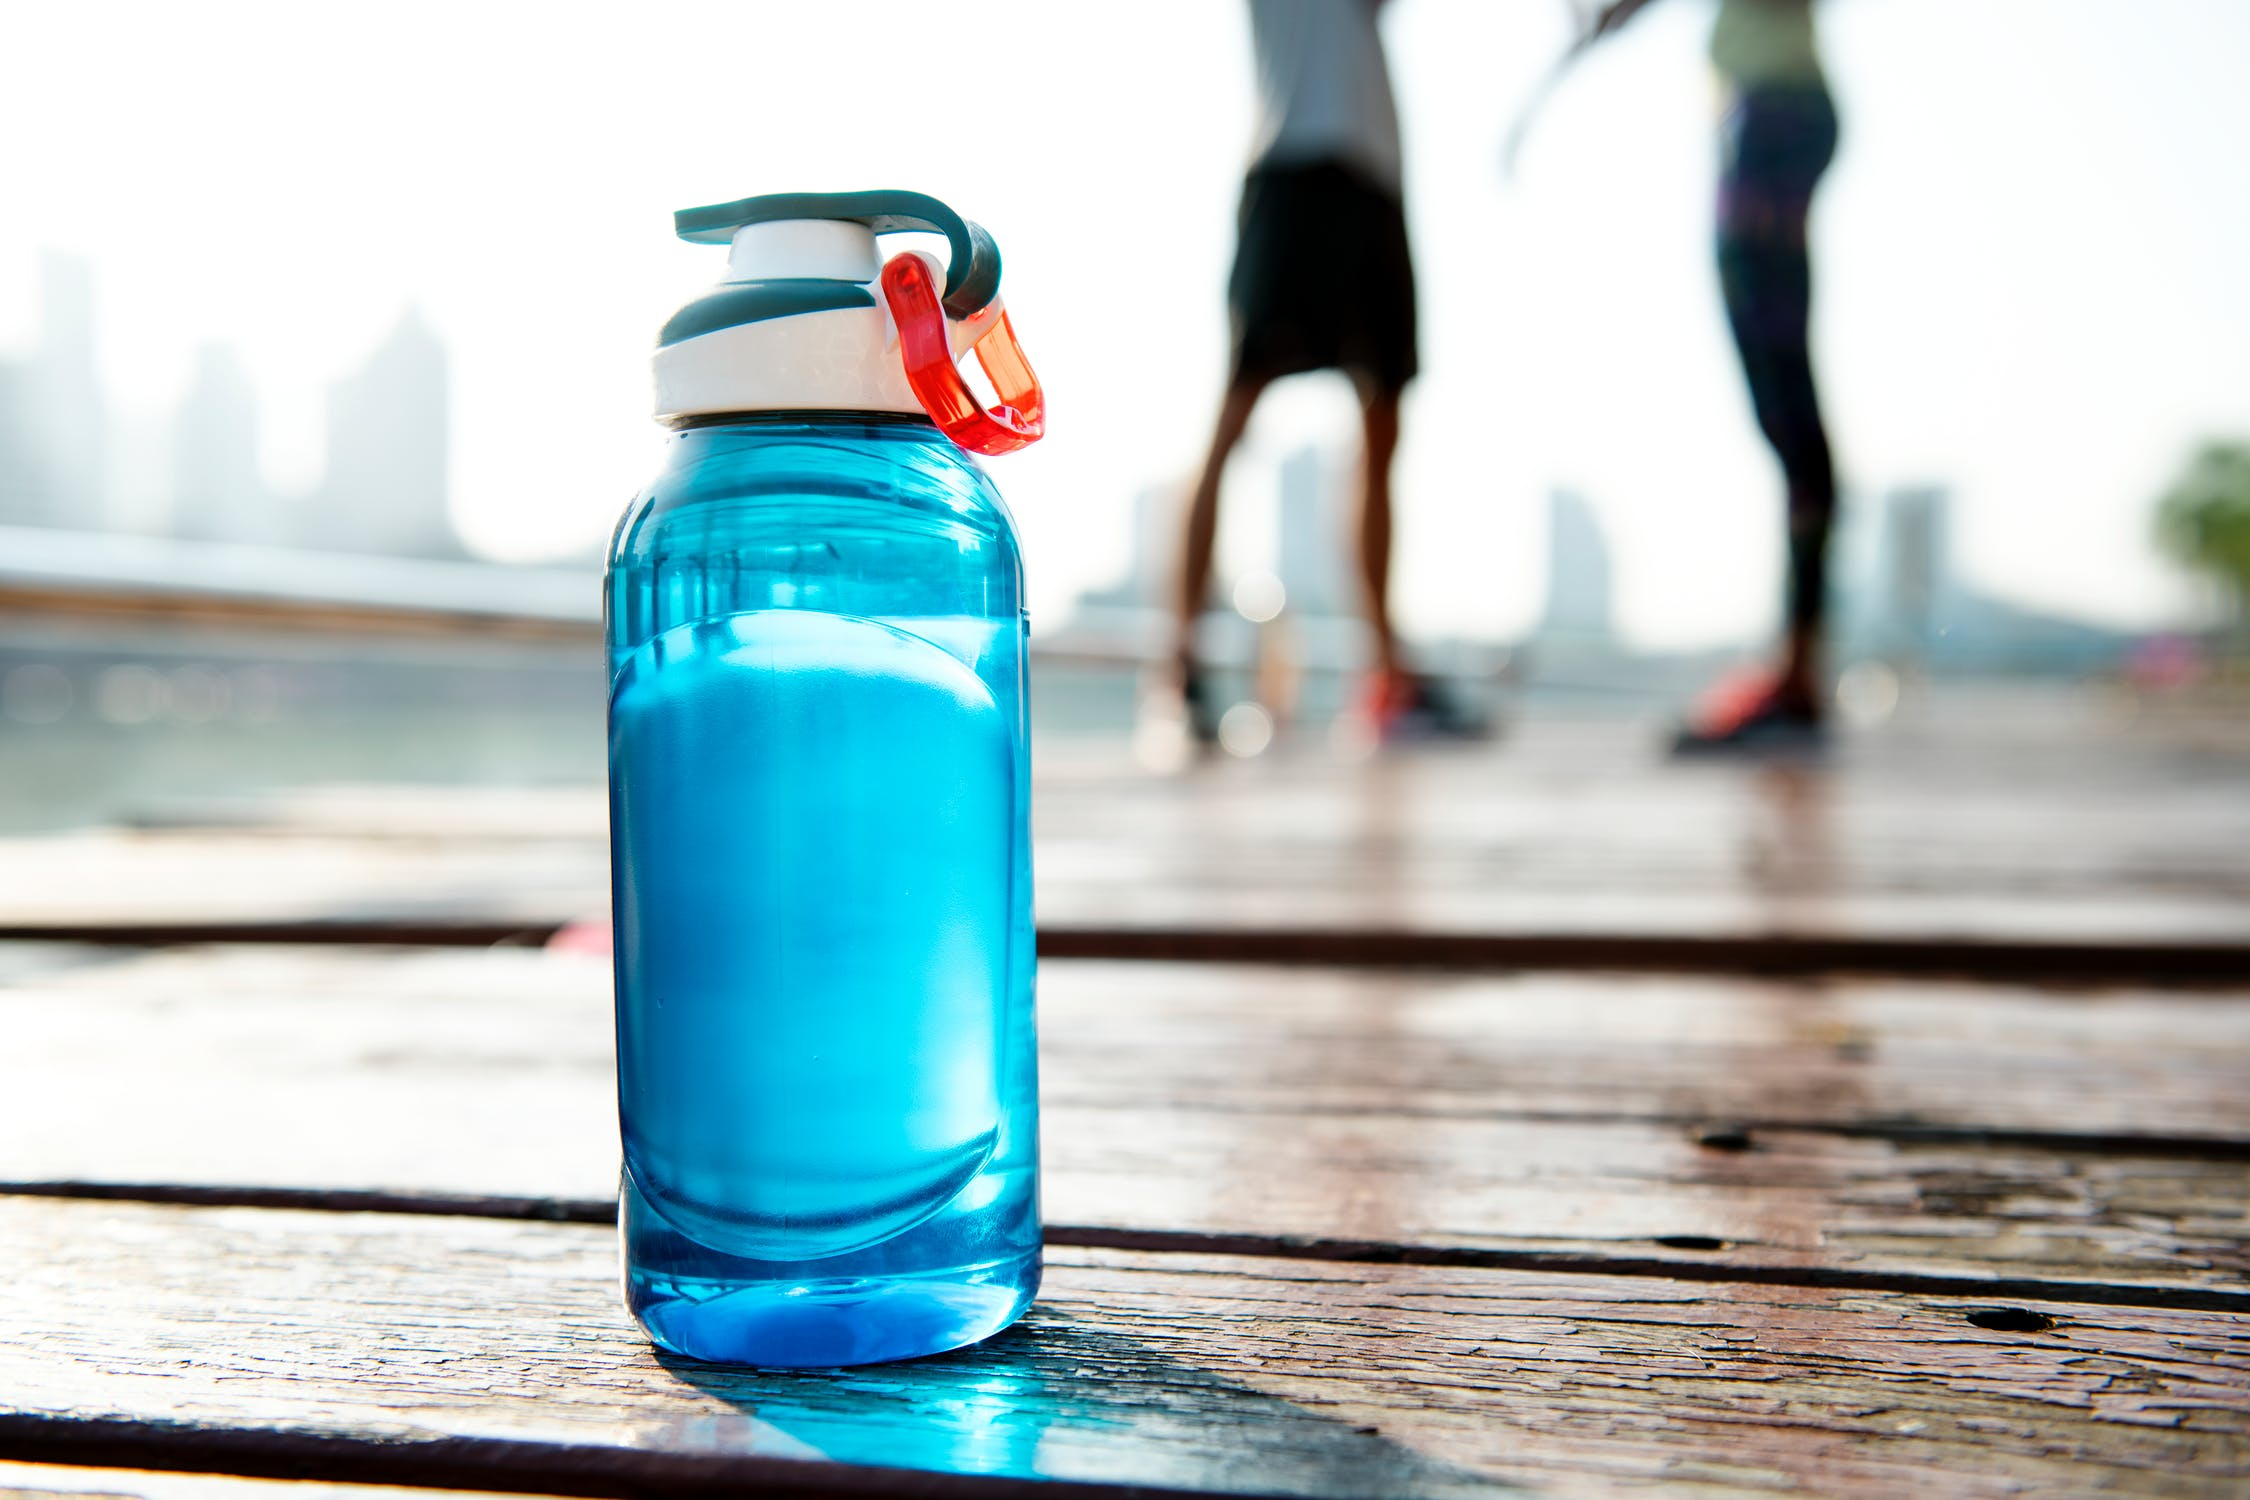 image of reusable water bottle